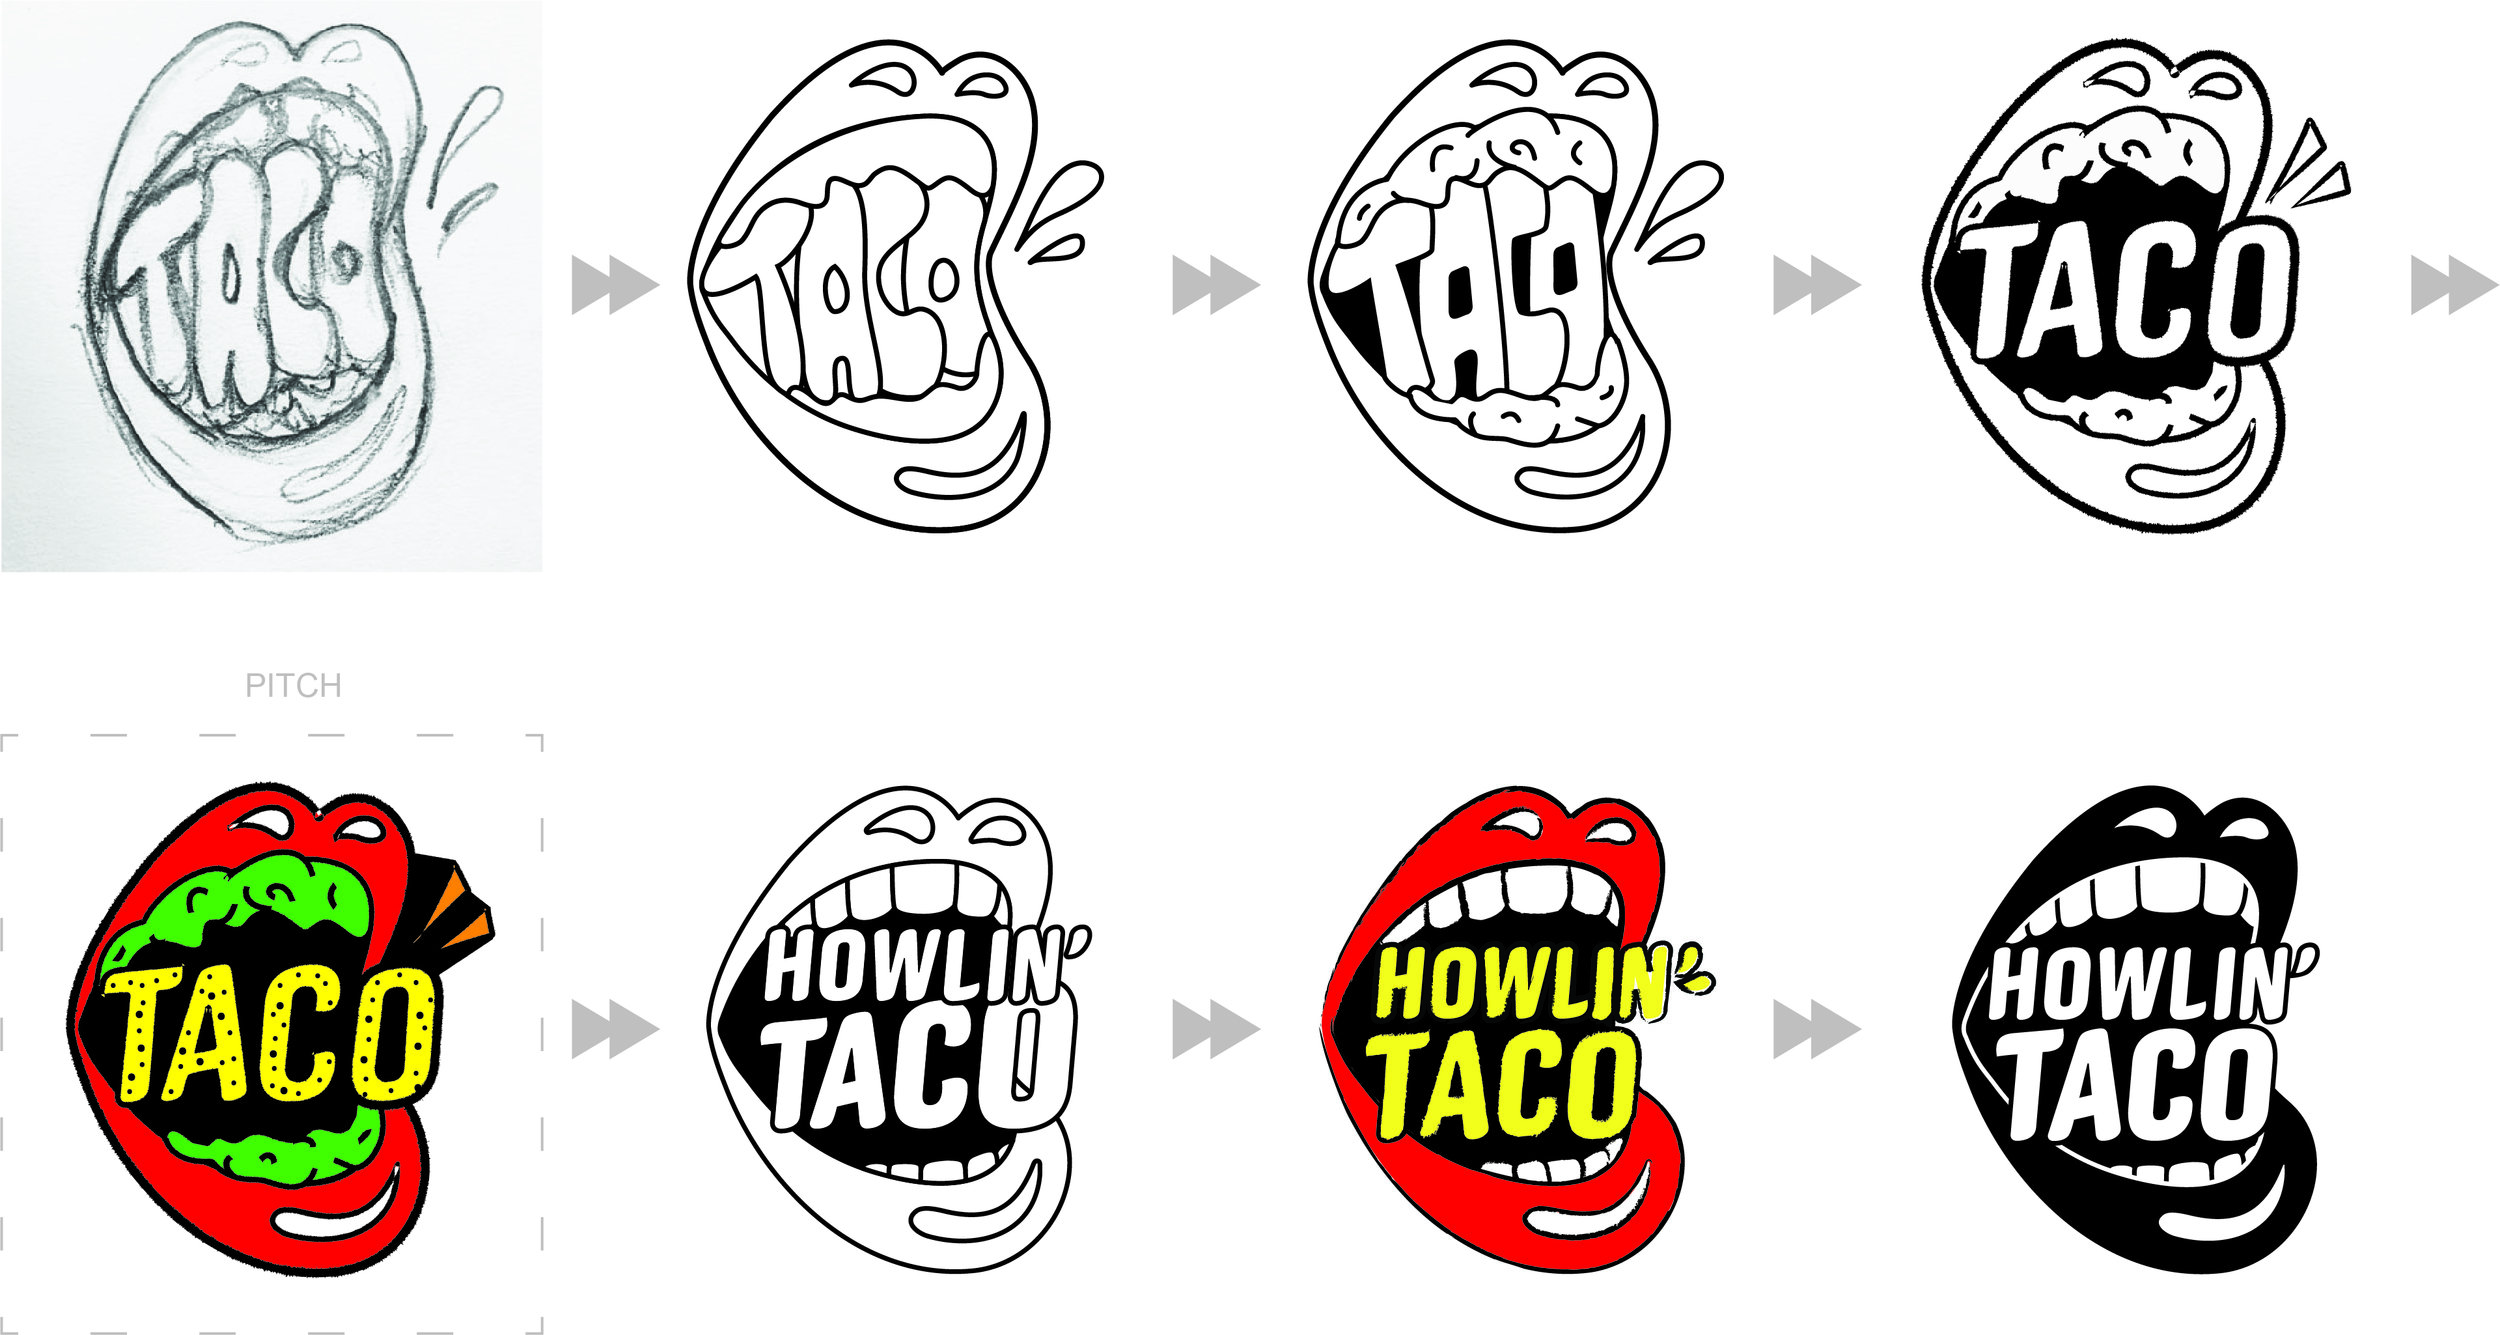 From sketch to final icon.   I drew the initial sketch within the first five minutes of our first design meeting. It was Saturday morning and I'd waited a while before we got started. I was hungry.  It came quickly. I was thinking food, rock n' roll, and Will's love for the Rolling Stones. We initially explored letting the taco mouth speak for itself and tried not including the full name in the icon. It was a very design-dream-world idea and the more practical full name won that one post pitch. Jason and I parted ways post pitch presentation. I refined the icon based on Will and Rob's feedback and…the logo was born. The whole process took less than < 5 days.  You can take a look at other directions we pitched at the end of this post.